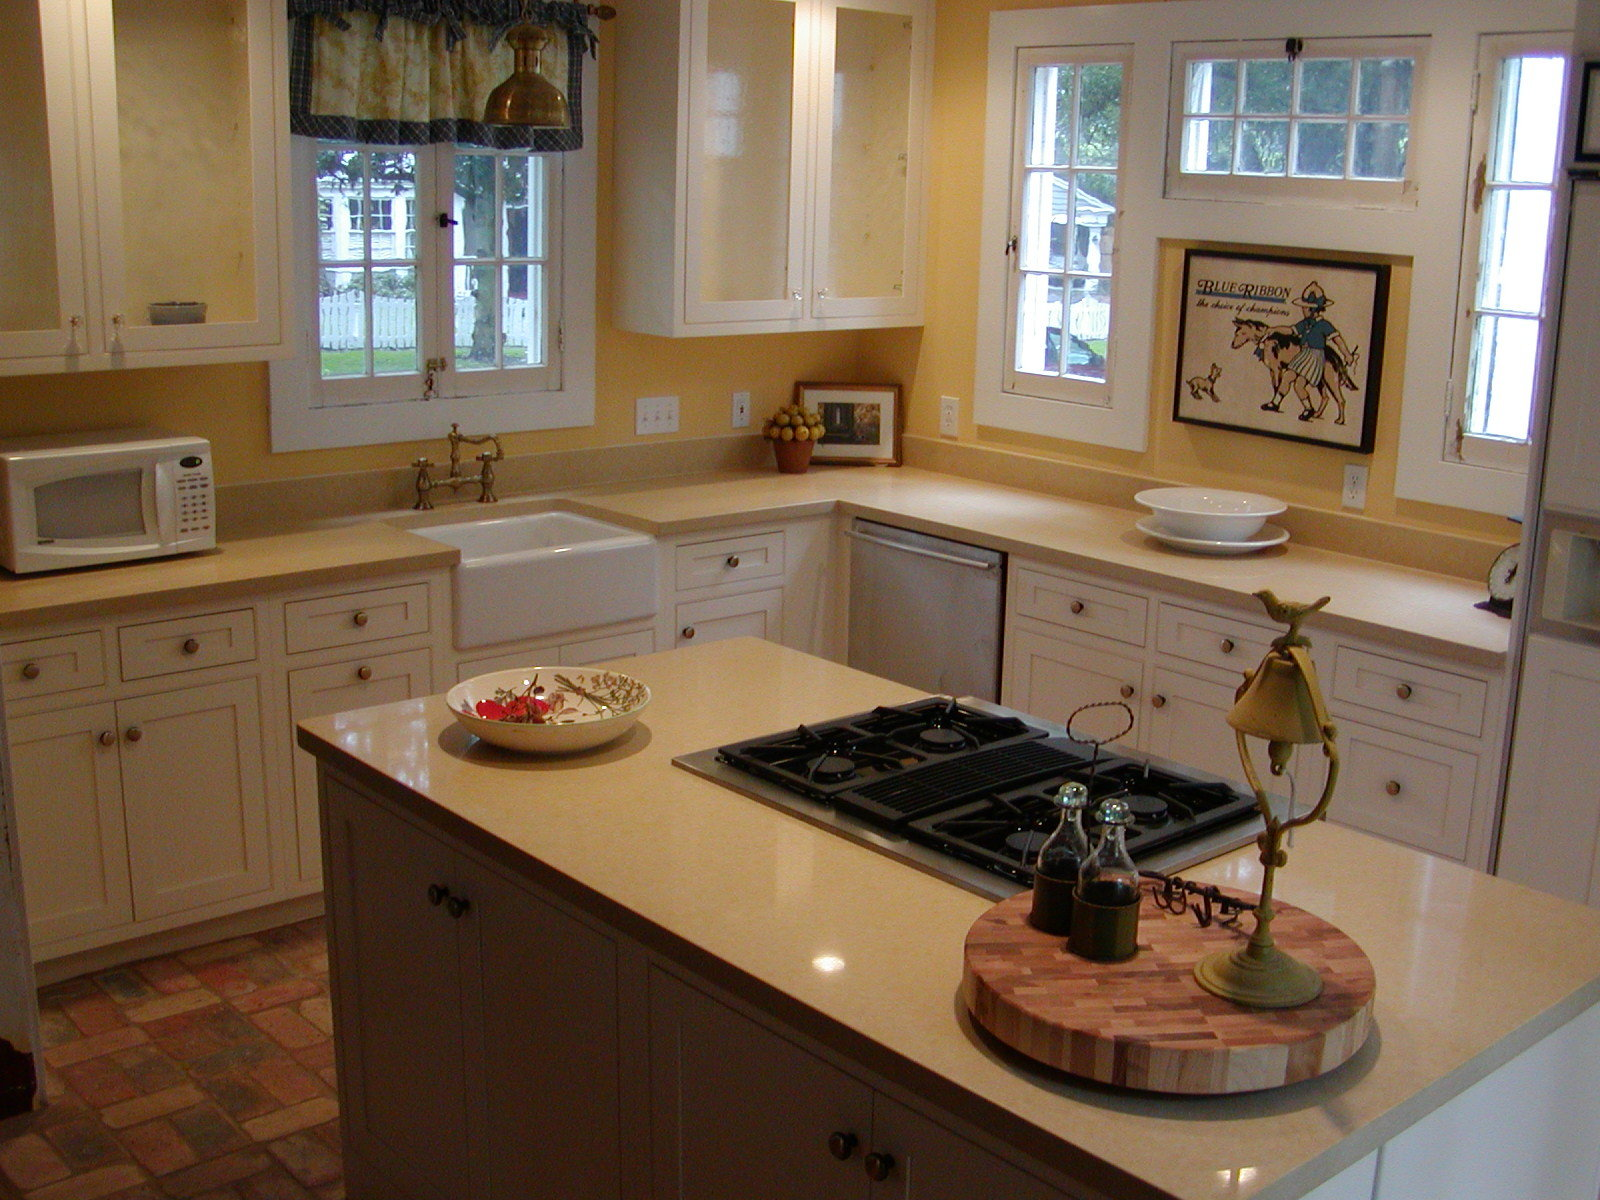 Kitchen Countertop Cabinets Selecting Kitchen Countertops Cabinets And Flooring Adp